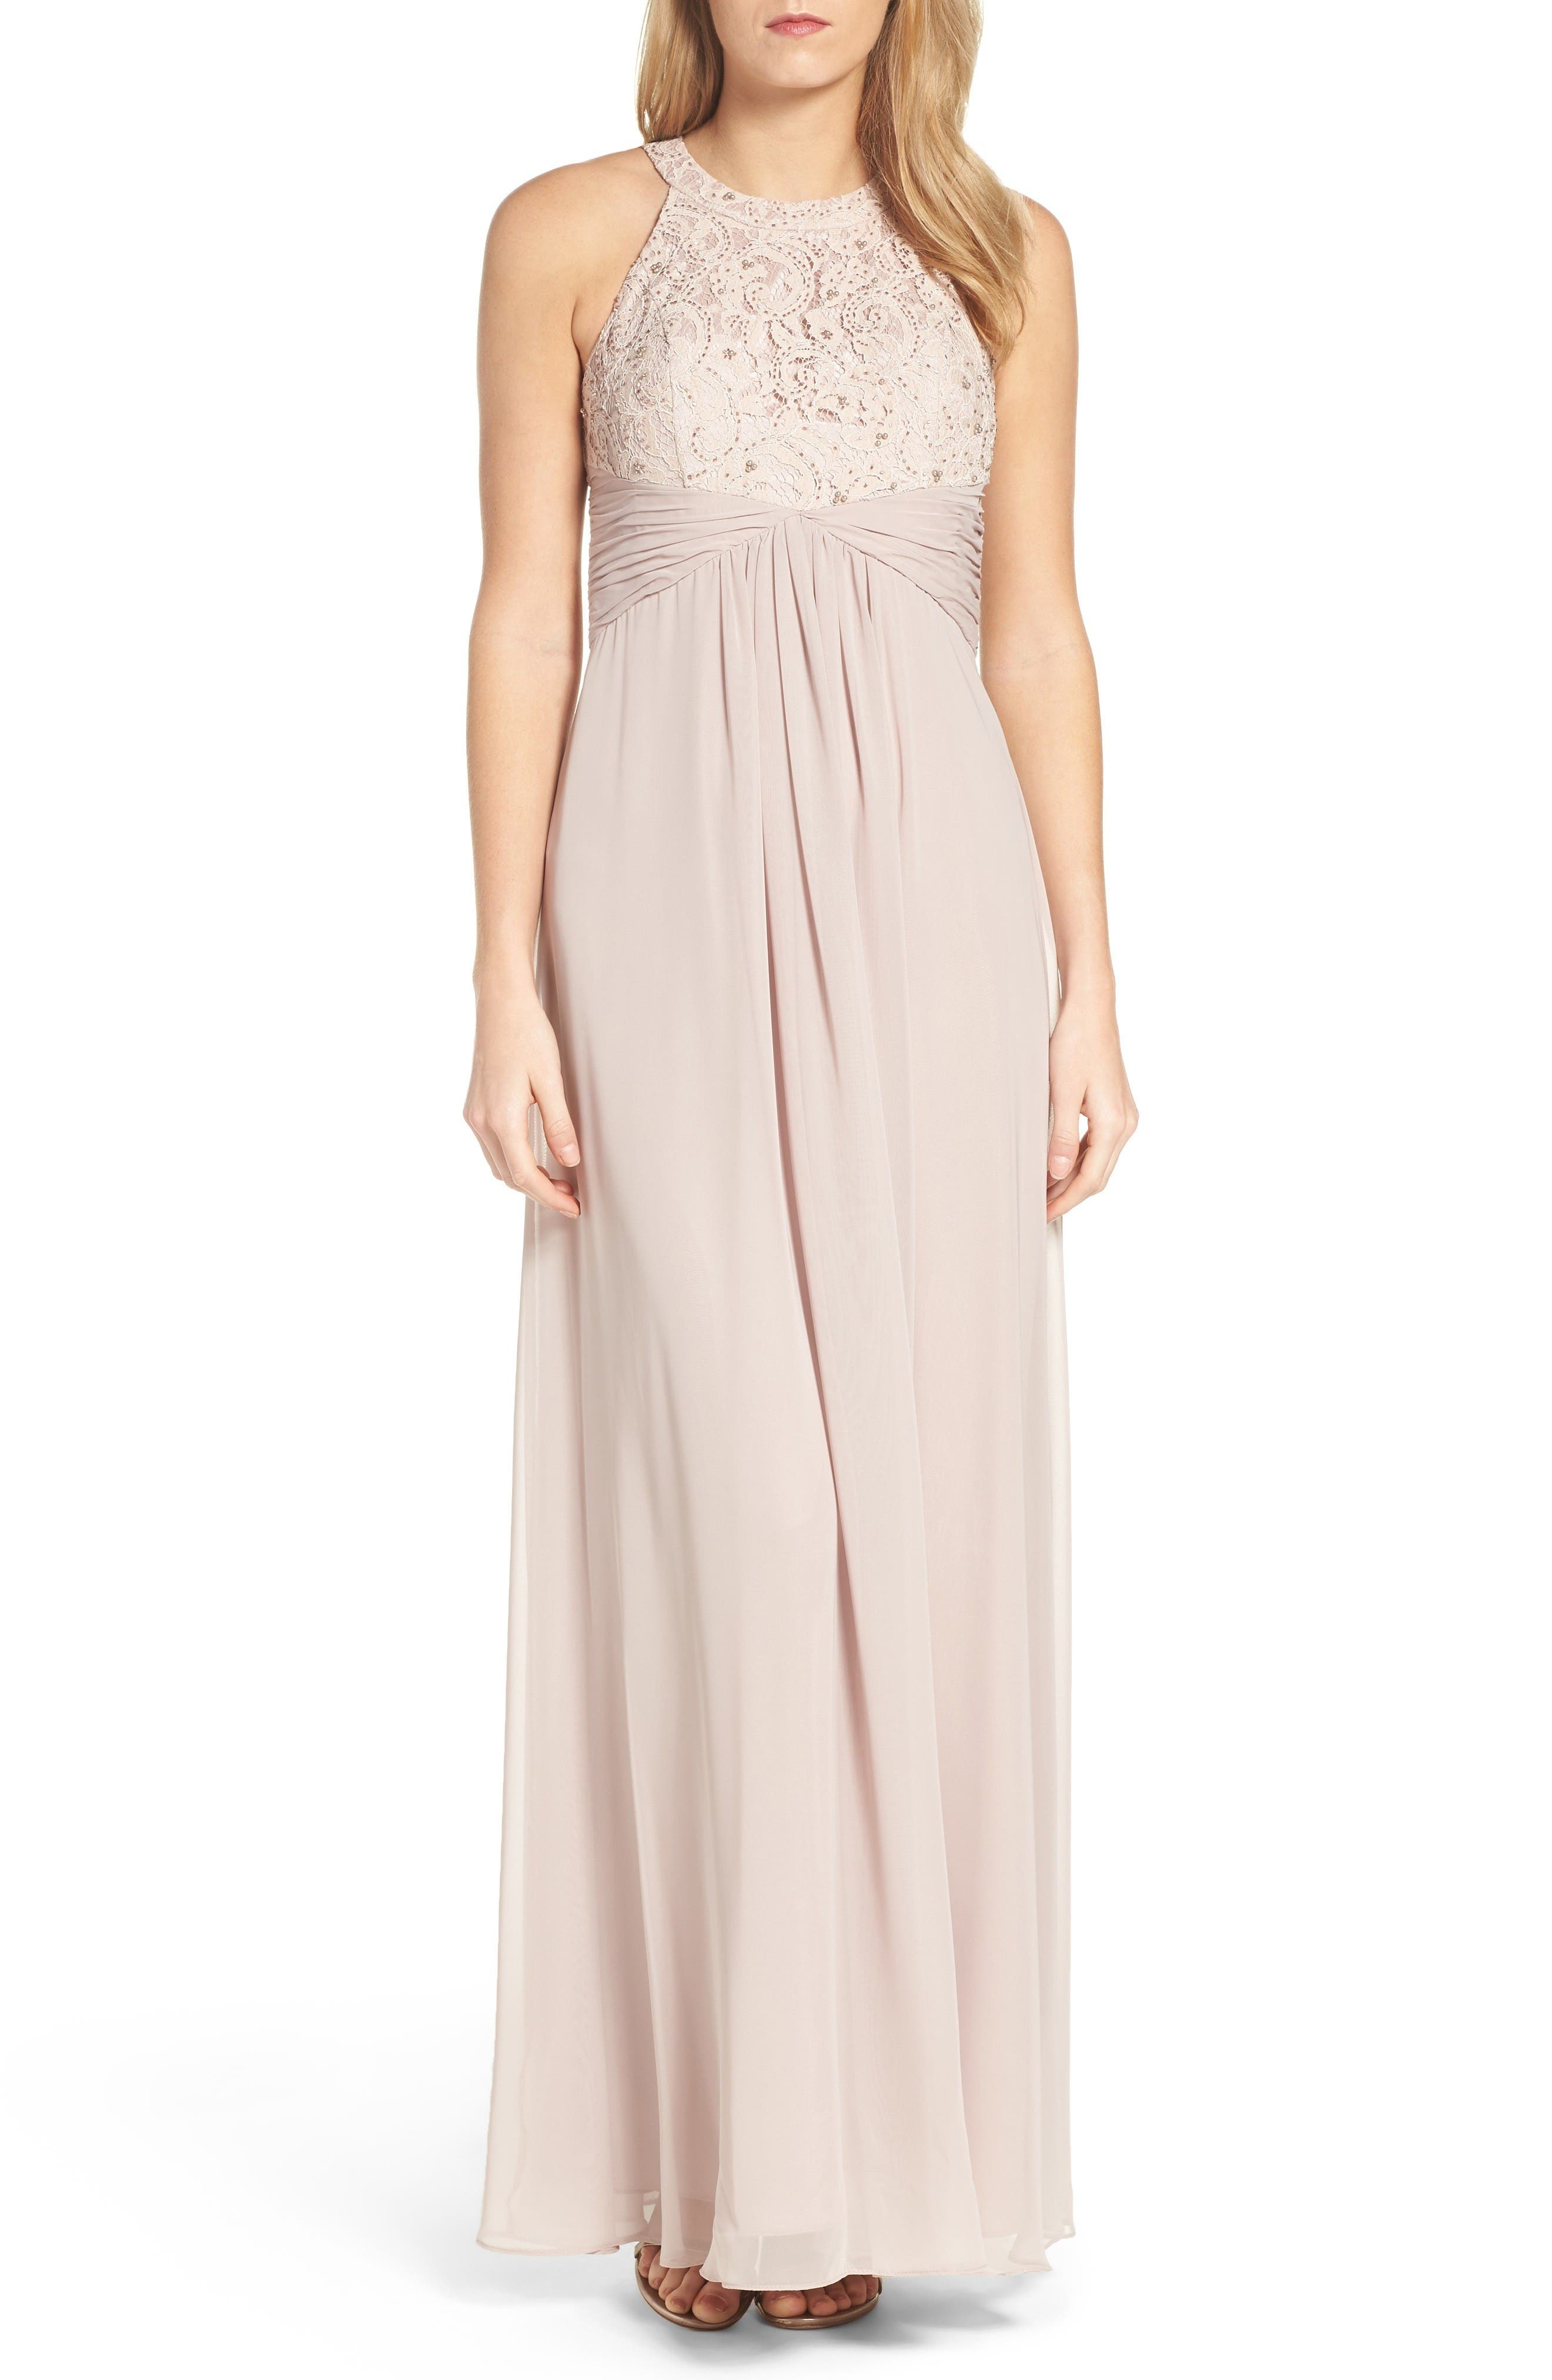 Alternate Image 1 Selected - Eliza J Beaded Lace & Chiffon Gown